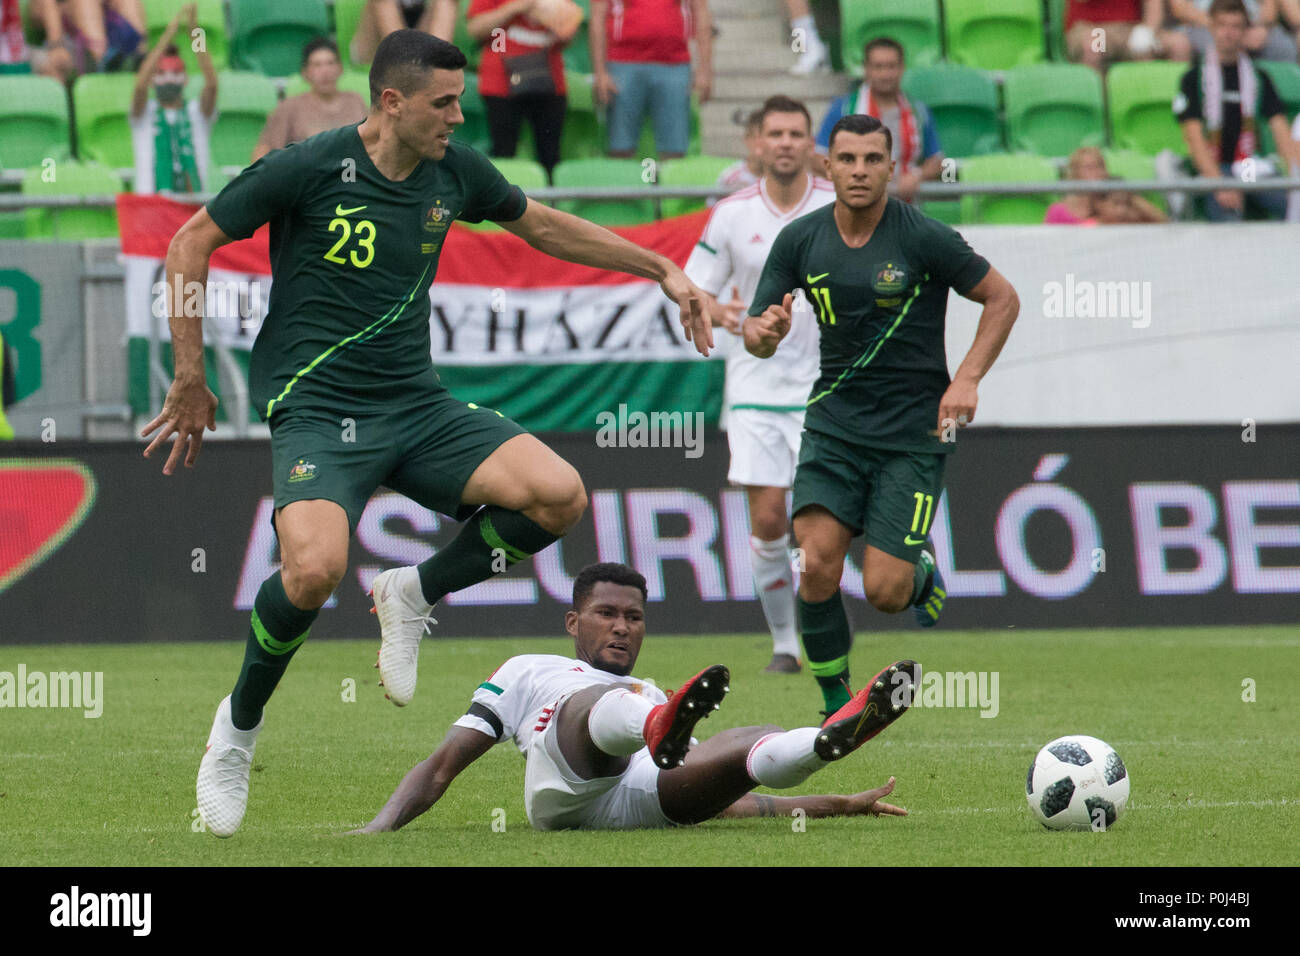 Budapest. 9th June, 2018. Tom Rogic (L) of Australia vies with Paulo Vinicius (bottom) of Hungary during the friendly match at the Groupama Arena in Budapest, Hungary on June 9, 2018. Australia won 2-1. Credit: Attila Volgyi/Xinhua/Alamy Live News - Stock Image